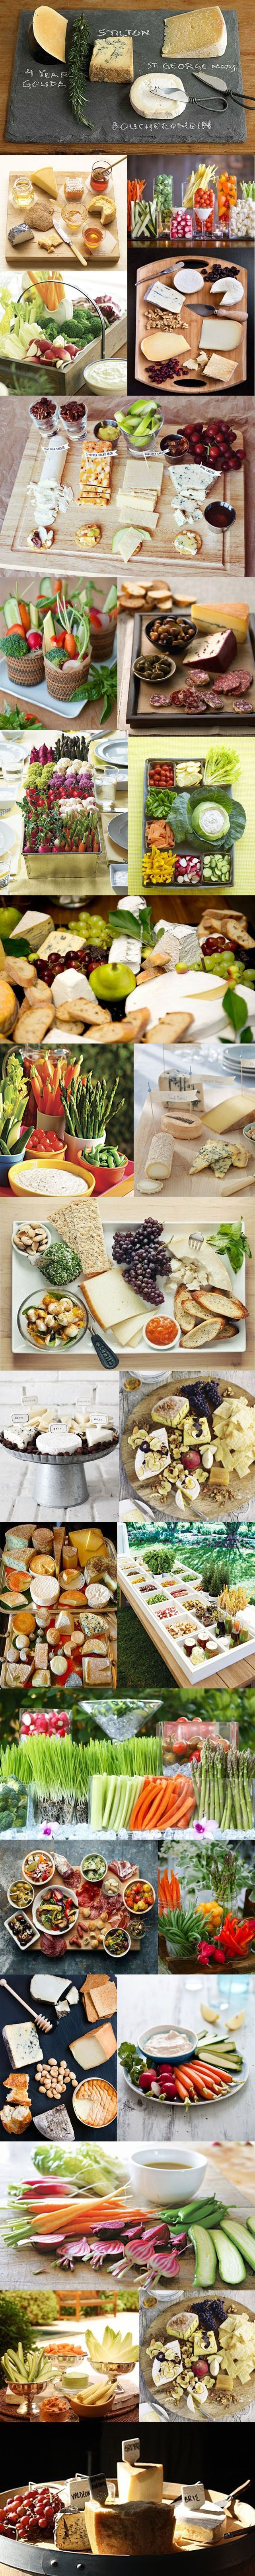 Cute appetizer displays for wine tasting party or any party: {www.wineglasswriter.com/} (Cheese Platter Display)